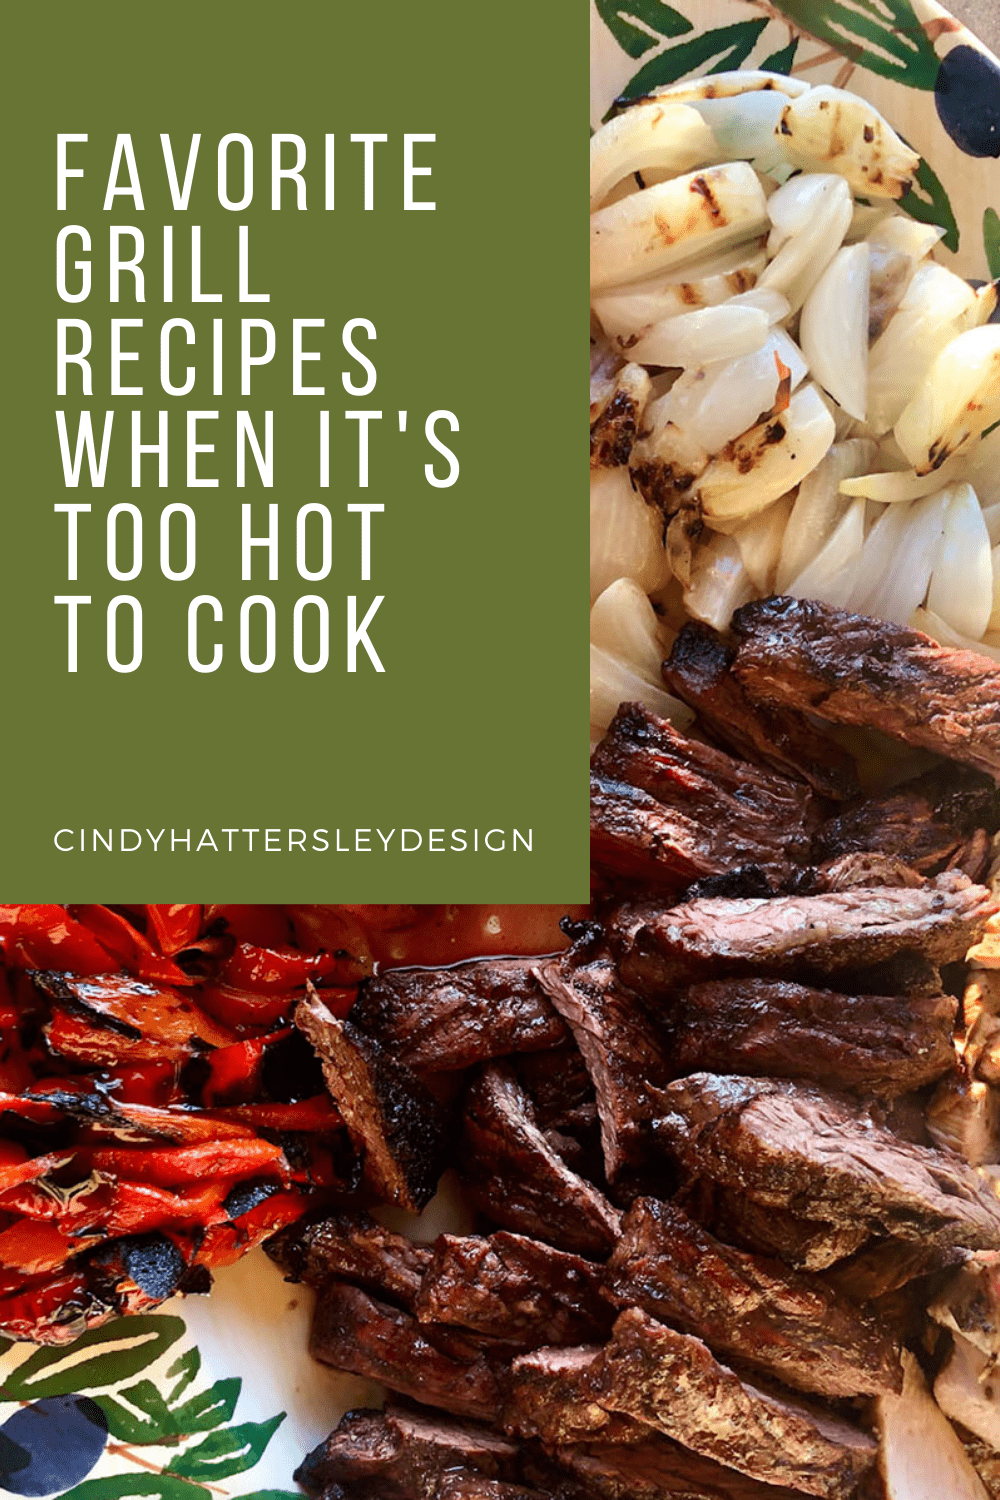 grill recipes when it's too hot to cook